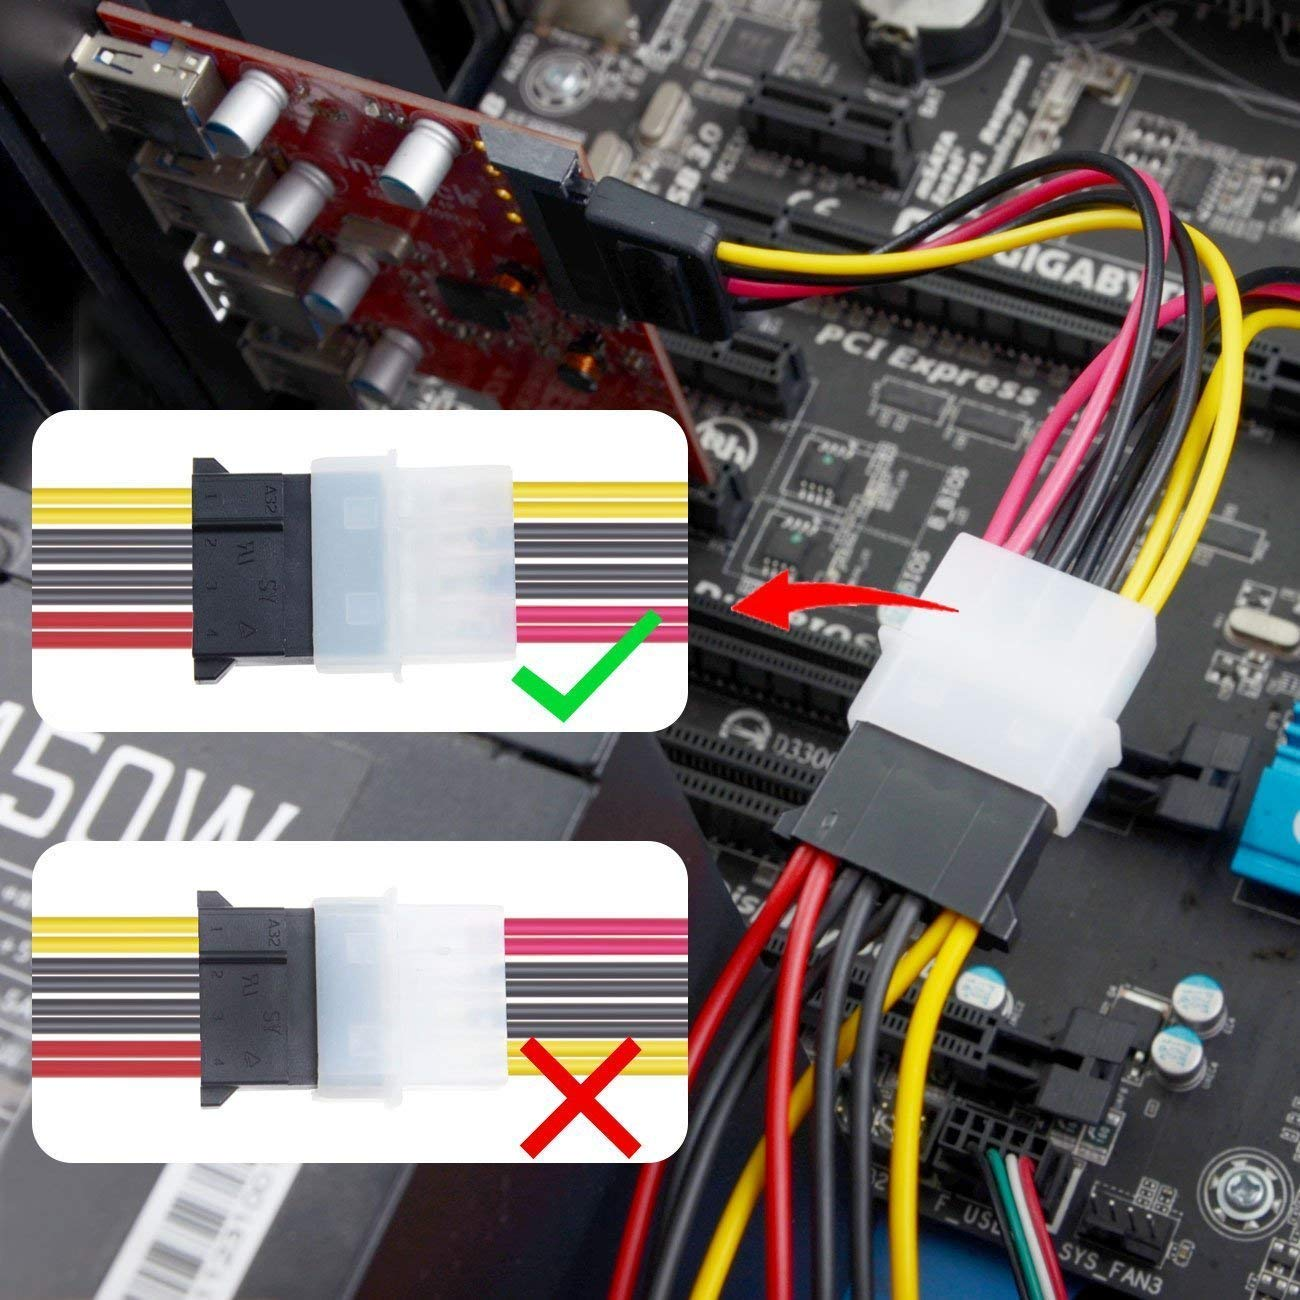 Inateck Ktu3fr 5o2i Usb 30 Expansion Card 5 Ports Black And Cbs 12 Circuit Wiring Module Red Computers Accessories